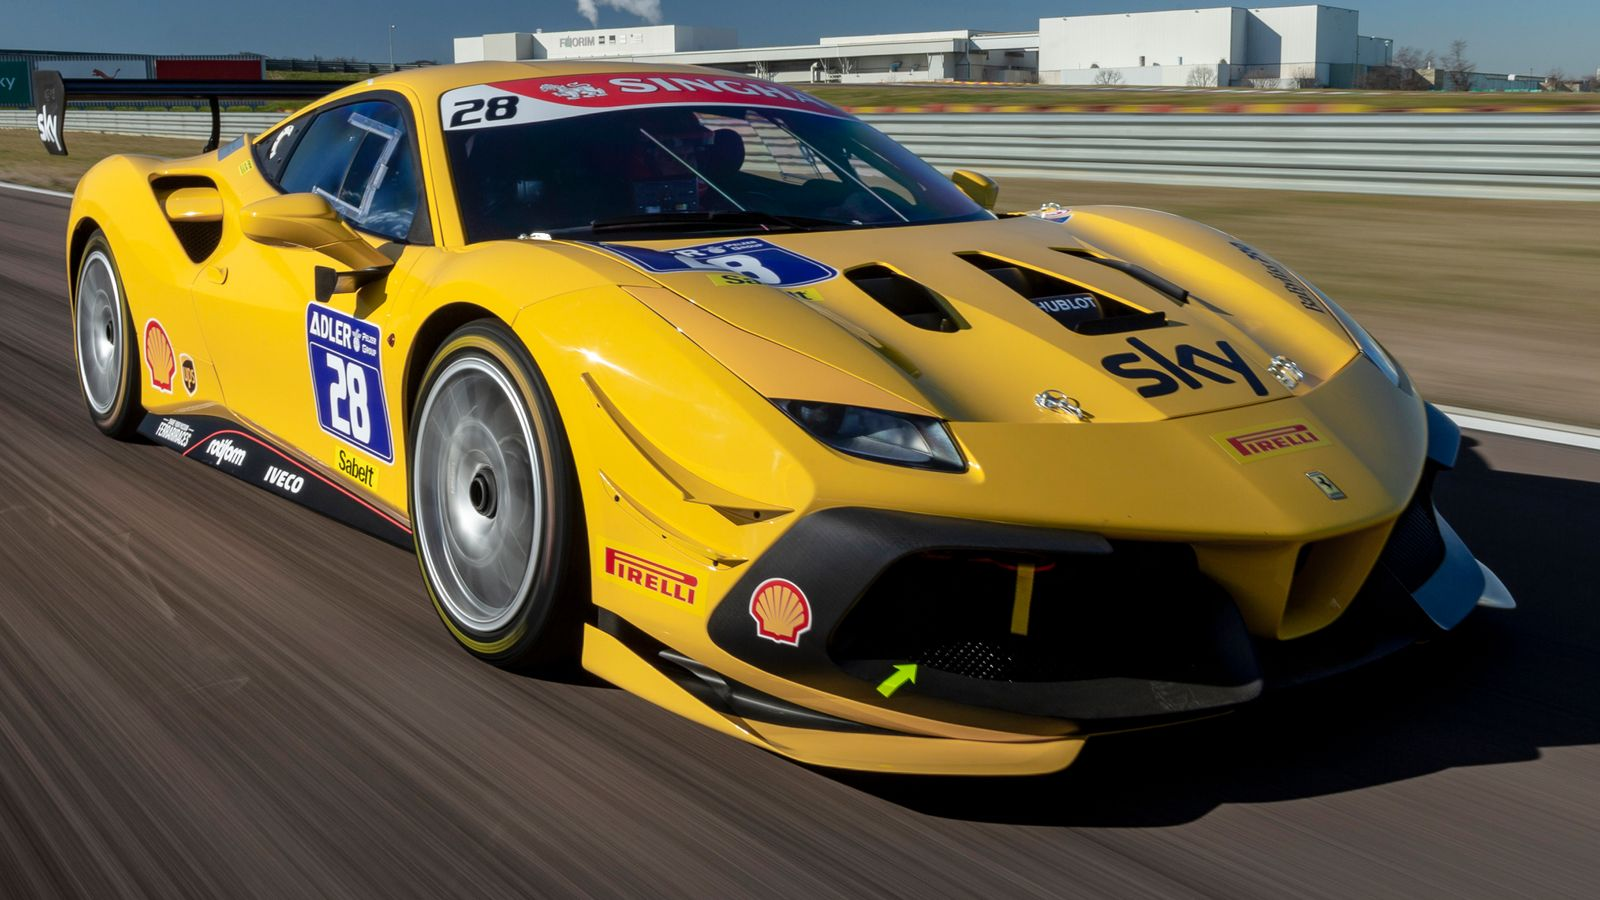 Ferrari Challenge's 2020 season begins on Sky Sports F1                                 Watch highlights of opening two races from